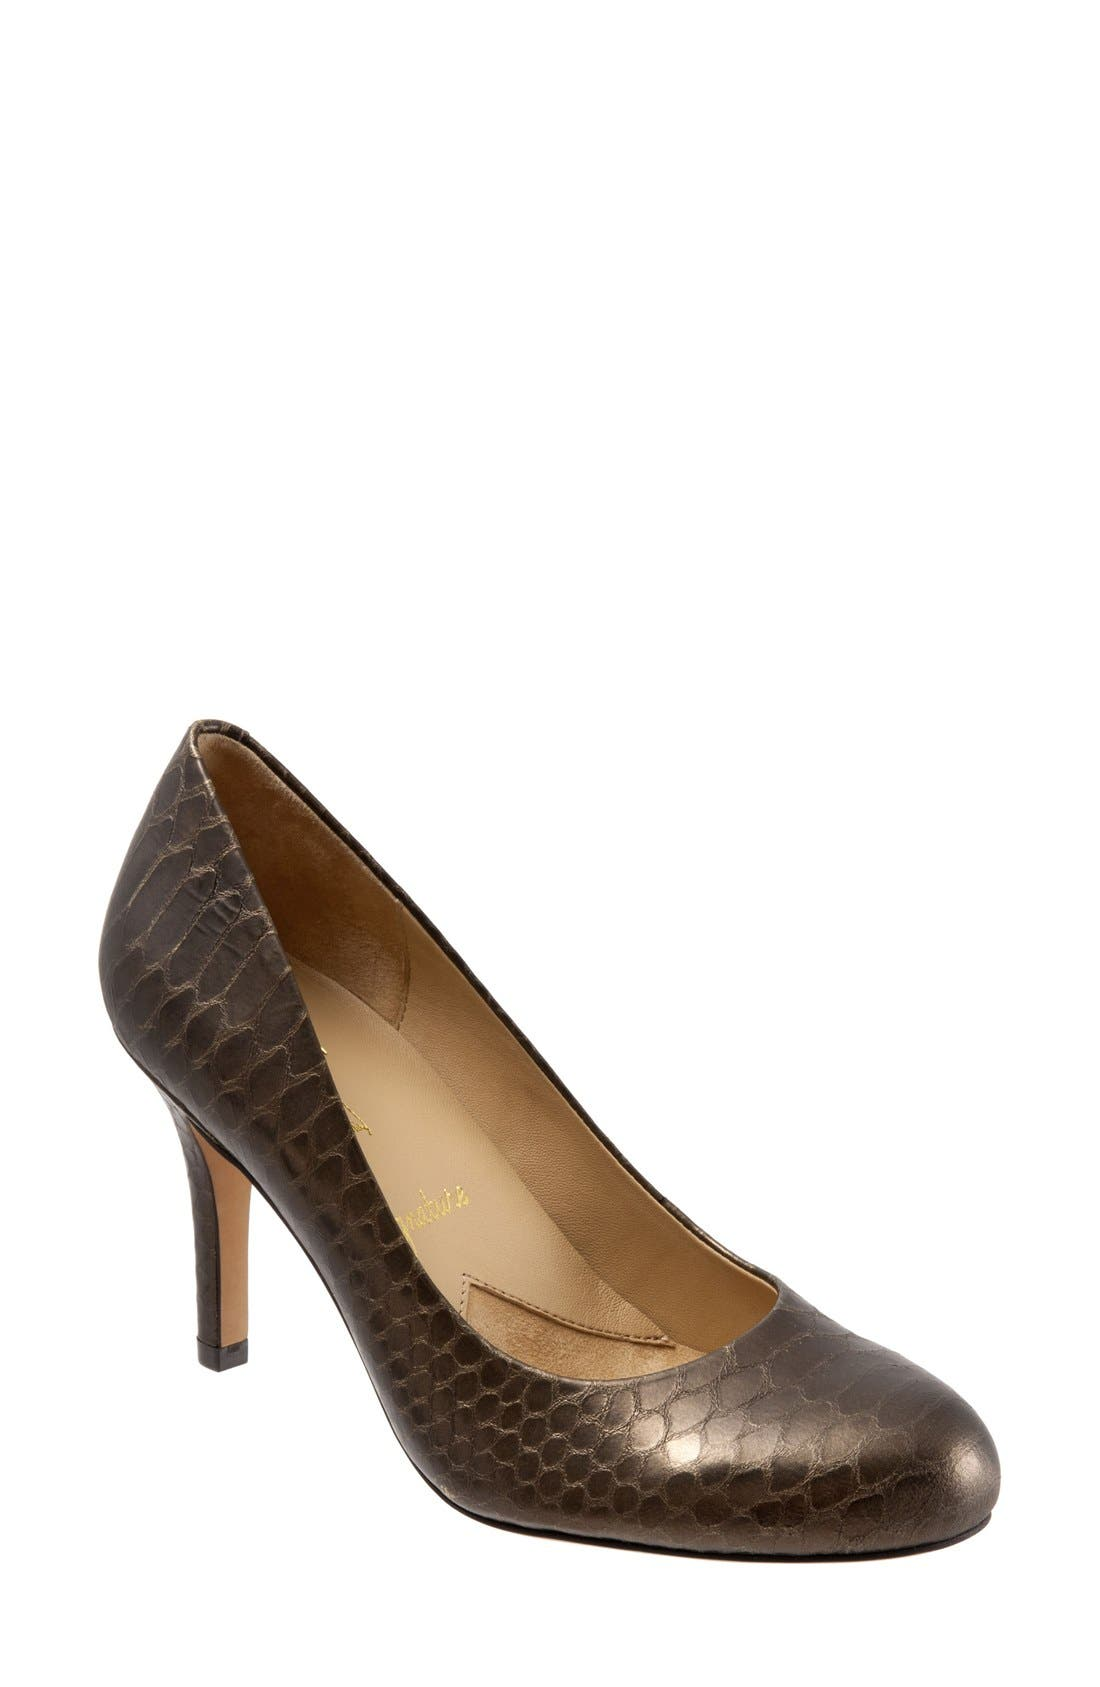 Main Image - Trotters 'Signature Gigi' Round Toe Pump (Women)